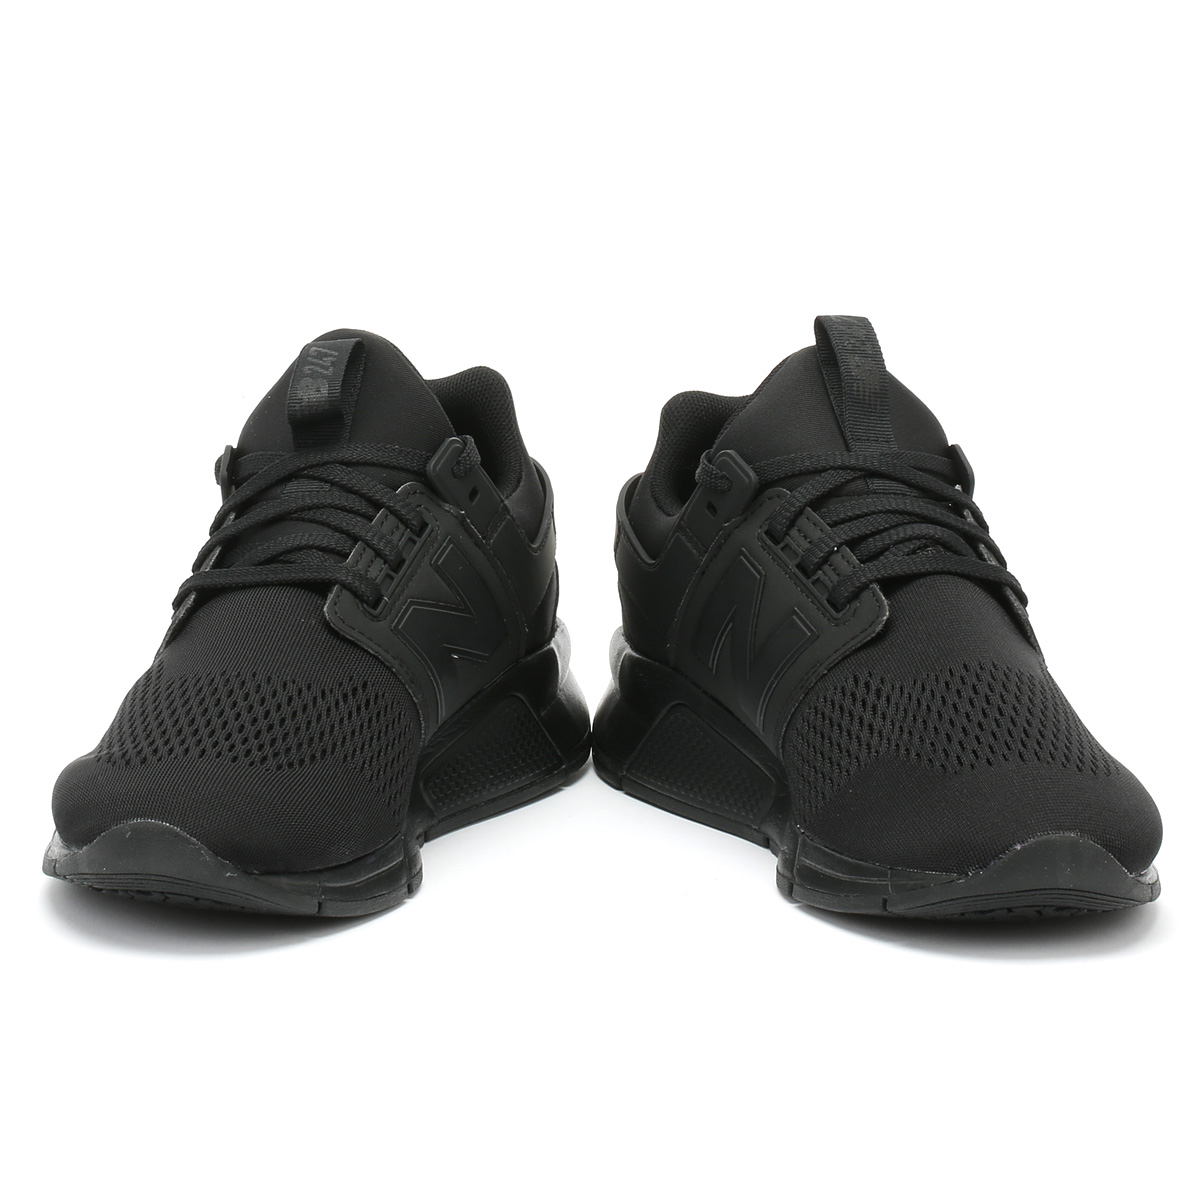 a0a097dd Details about New Balance Mens Trainers 247 Black & Black Sport Casual  Running Shoes